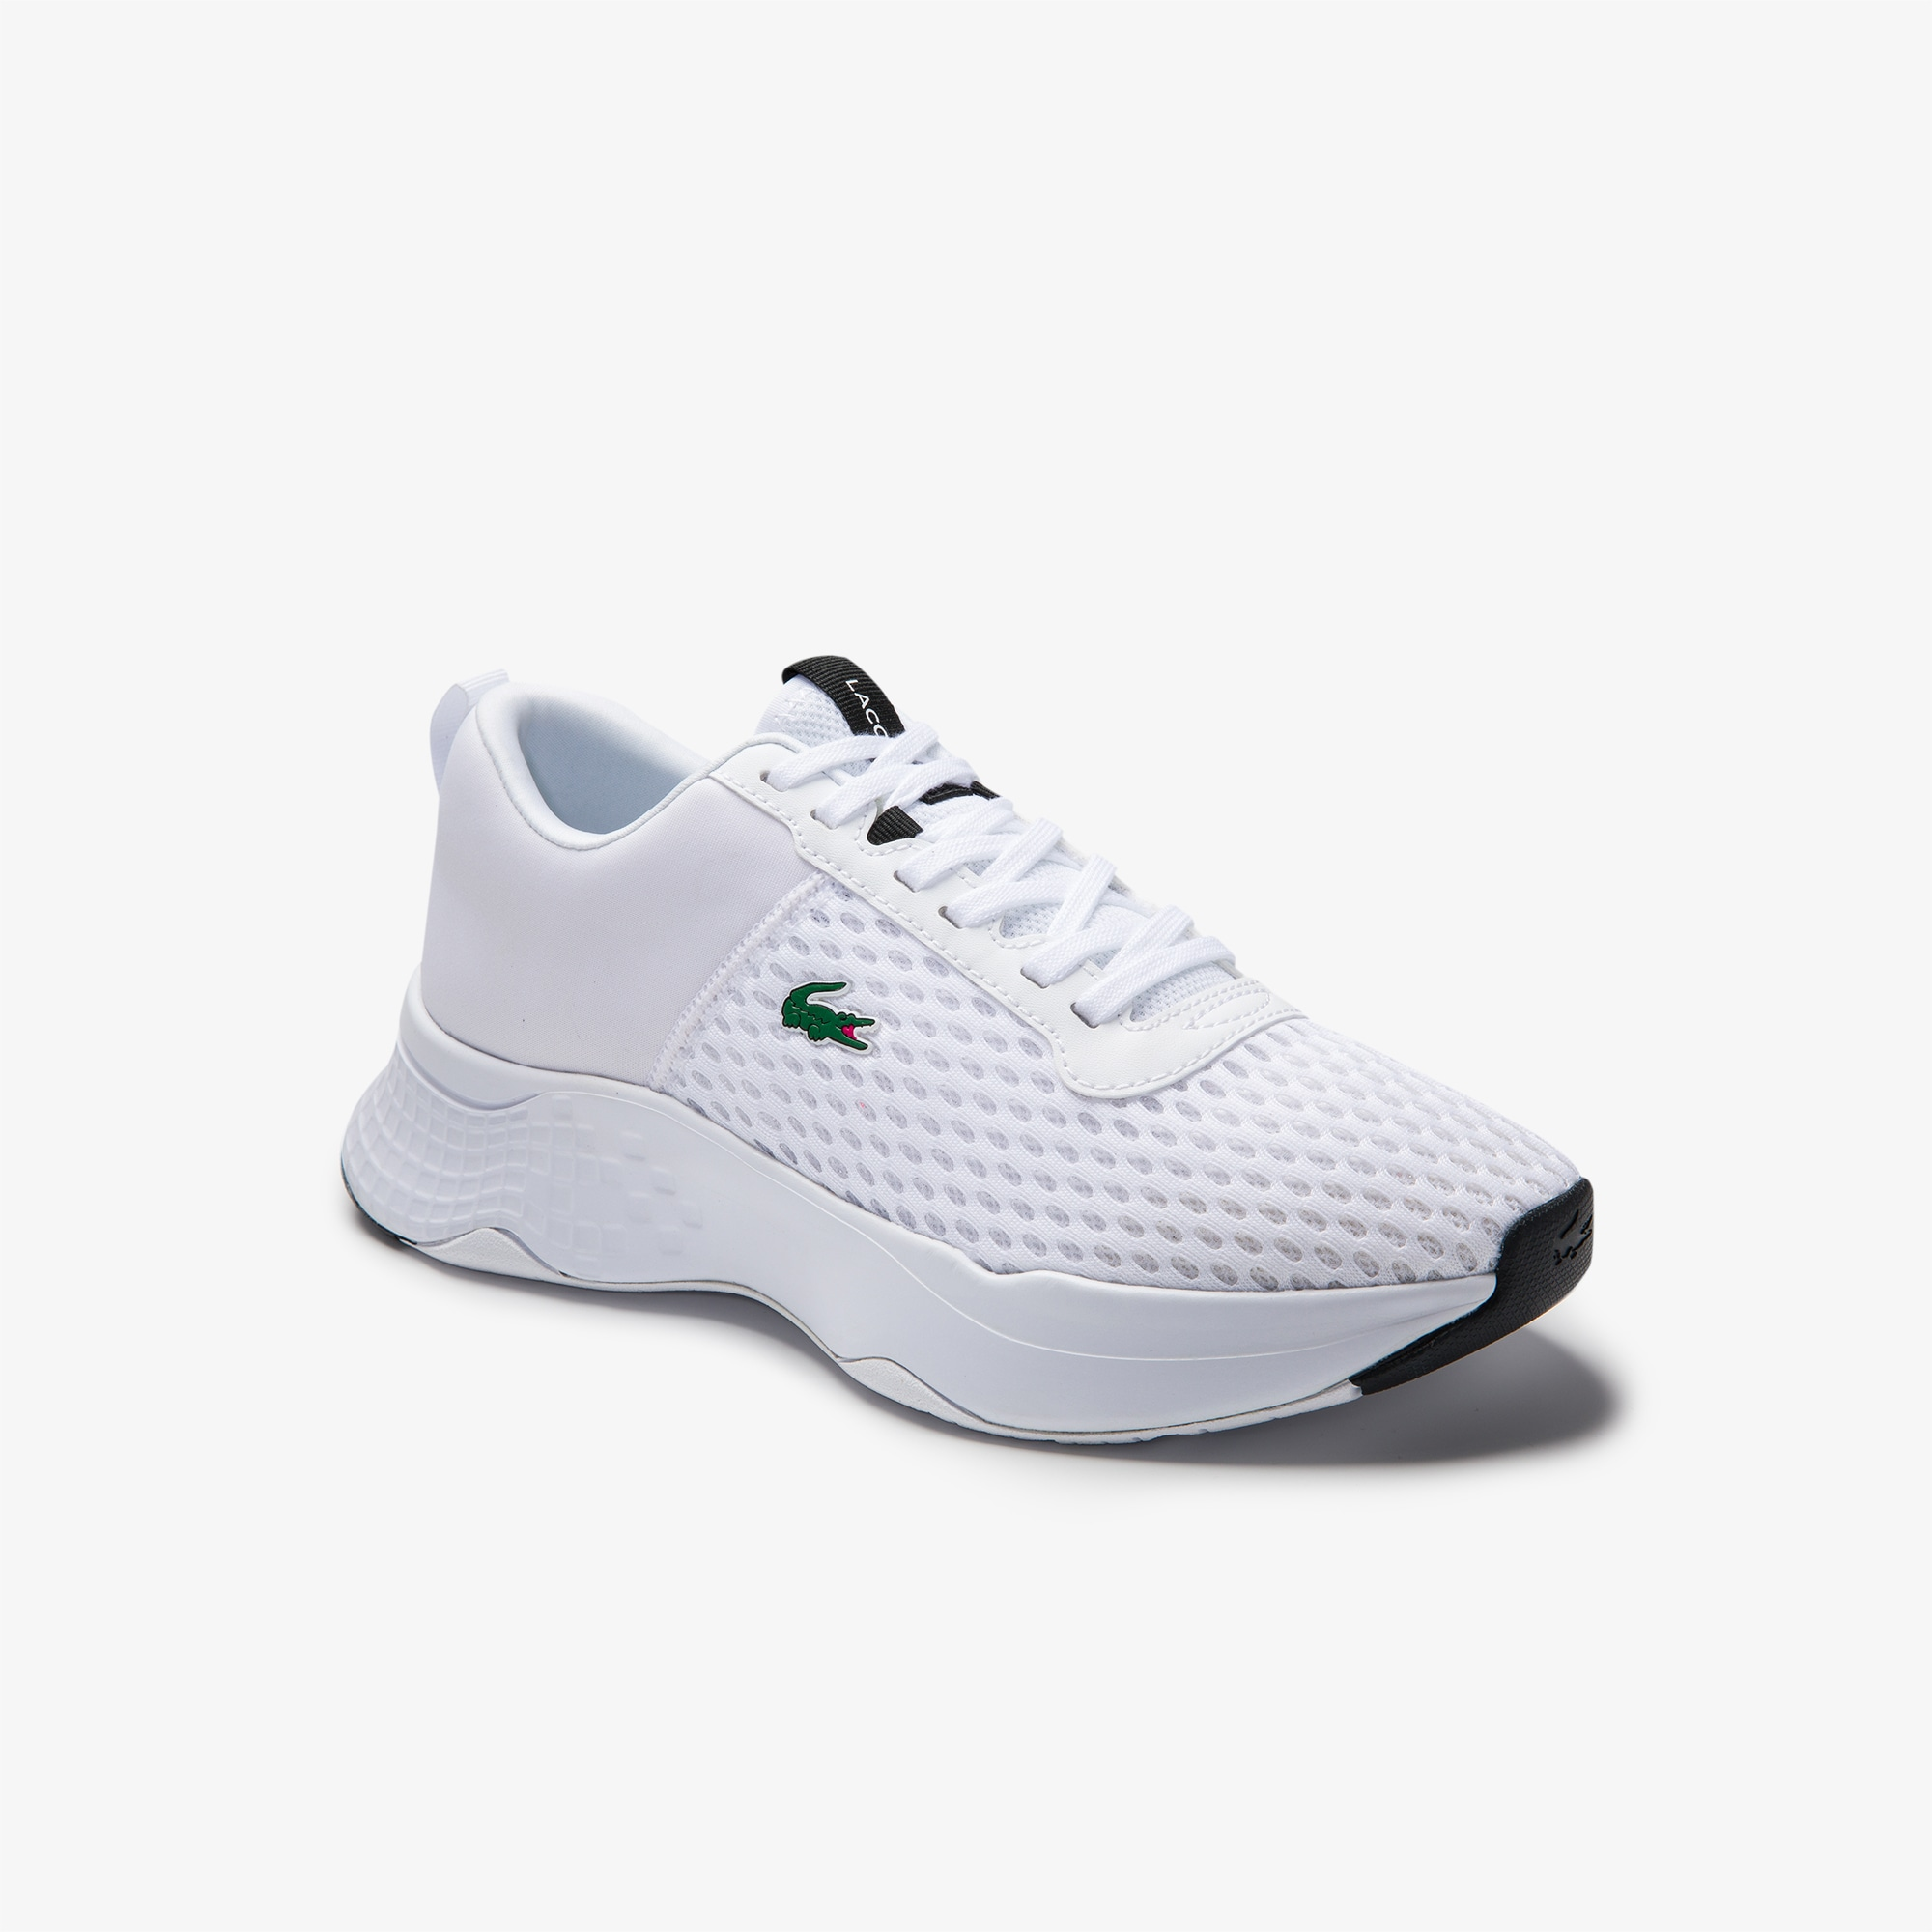 라코스테 키즈 주니어 스니커즈 Lacoste Juniors Court-Drive Mesh and Stretch-knit Trainers